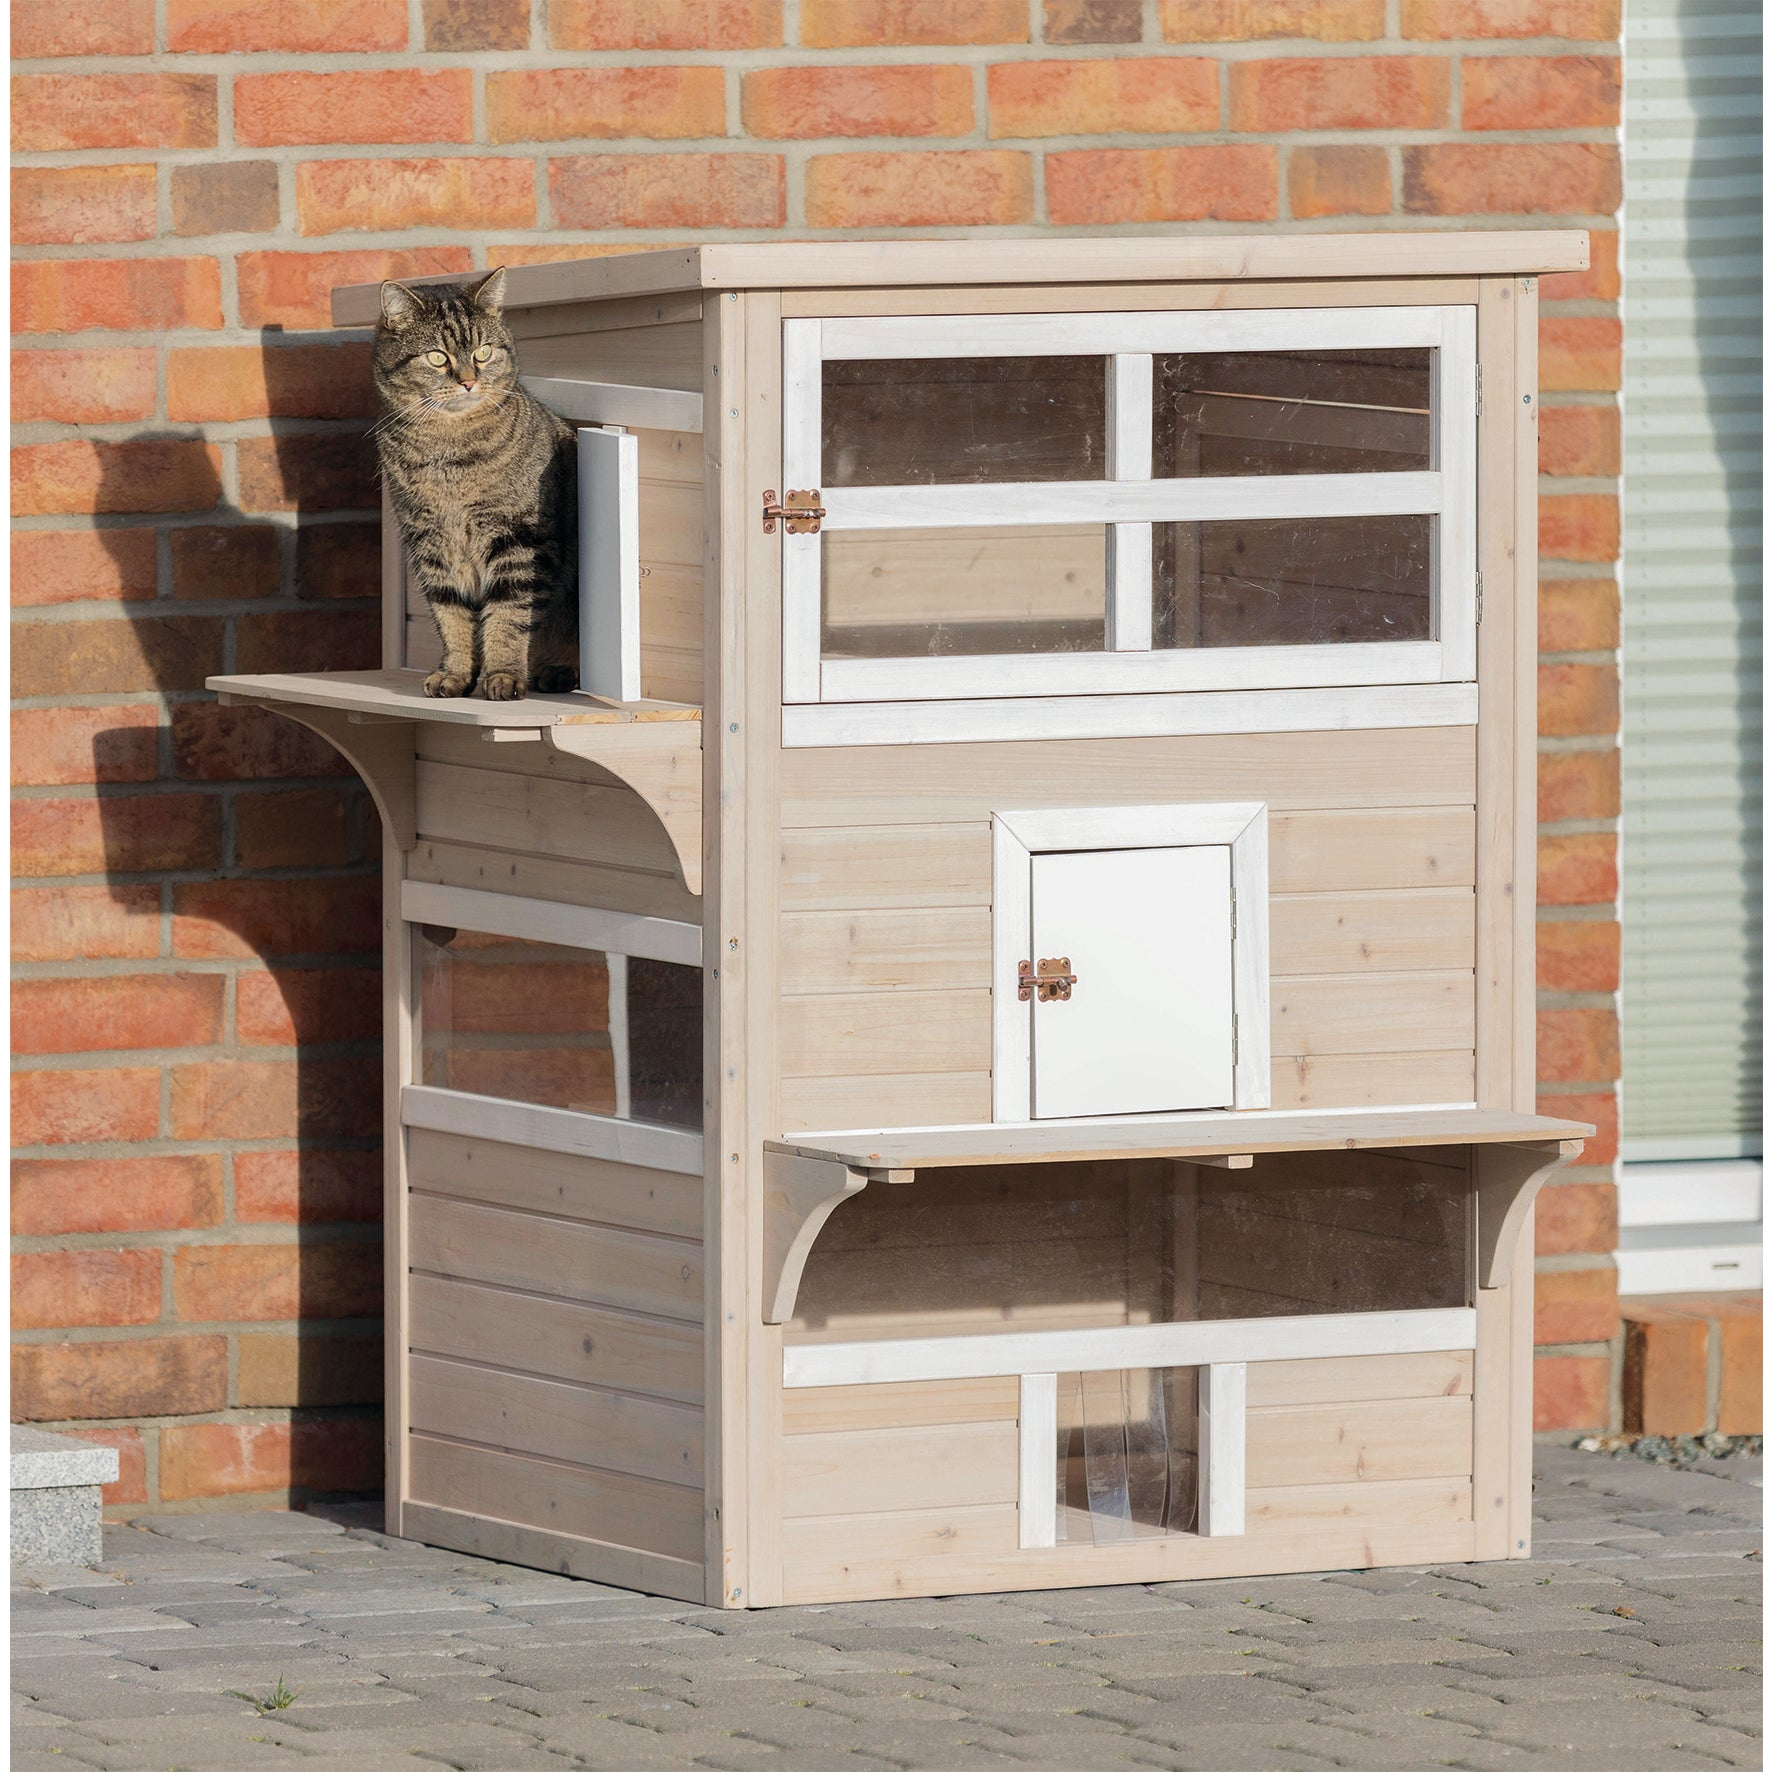 Trixie XXL 3-story Wooden Outdoor Cat House (Grey/White)